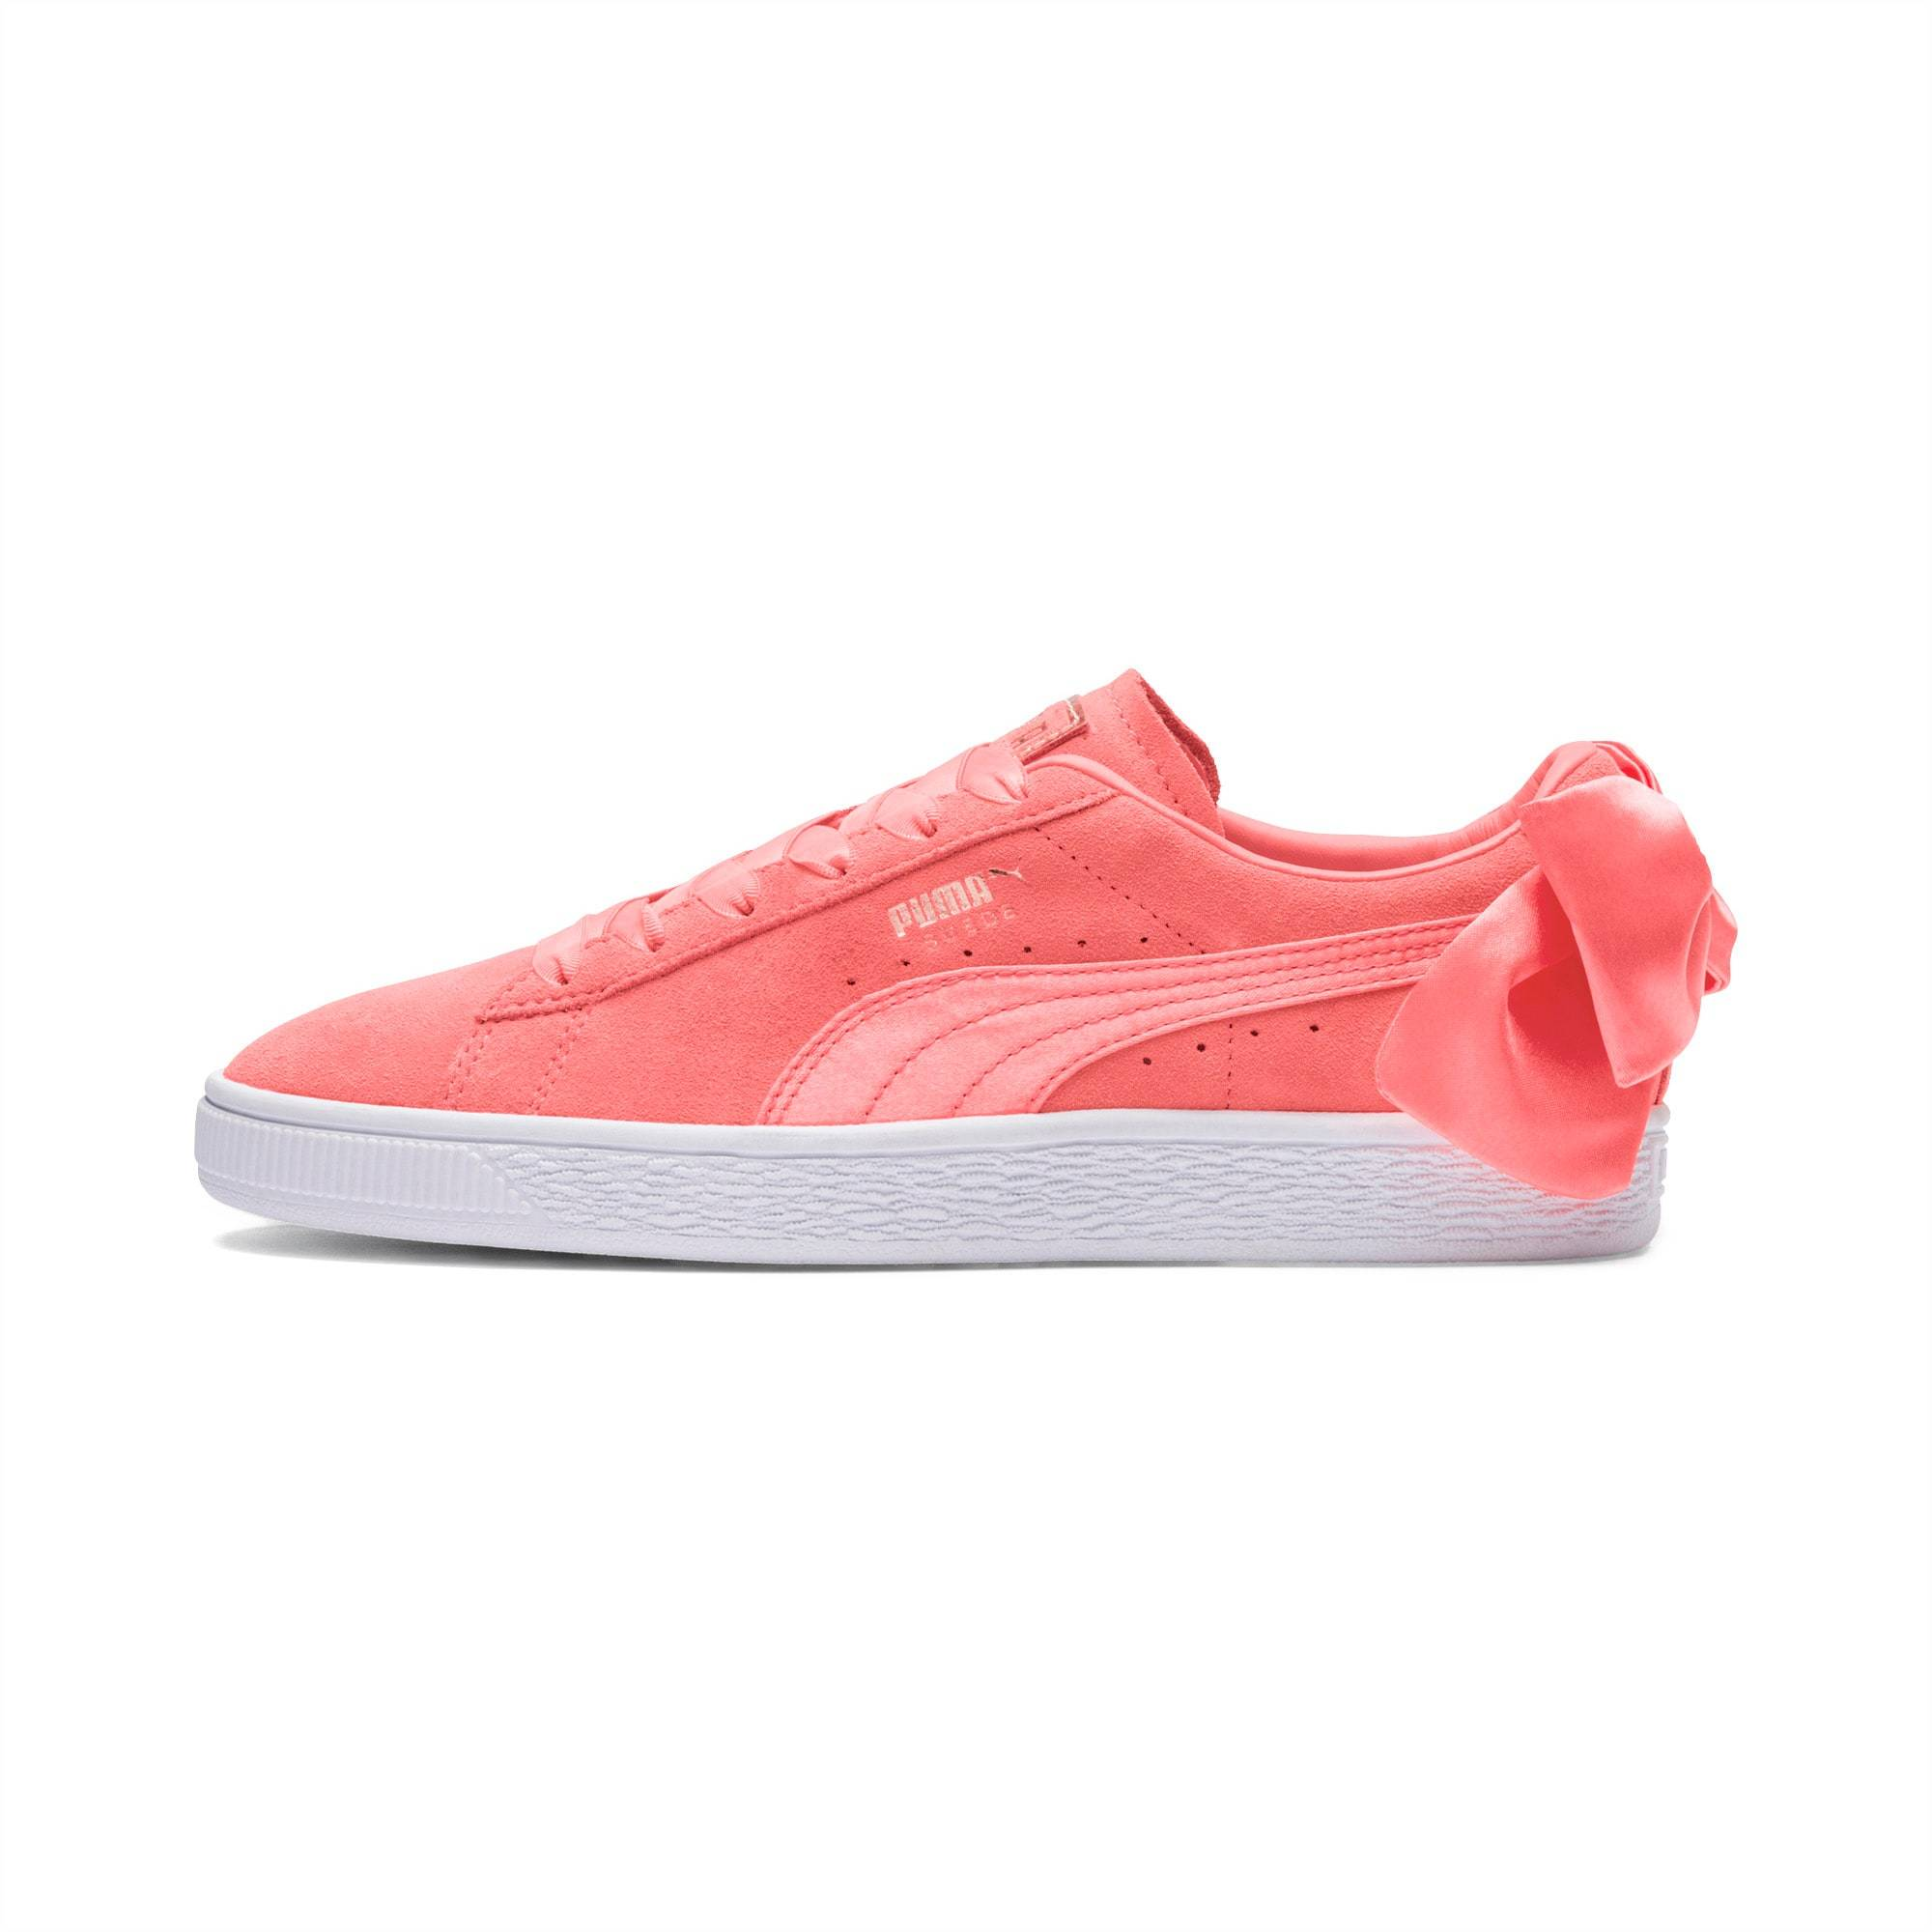 PUMA Chaussure Suede Bow pour Femme, Rose, Taille 41, Chaussures